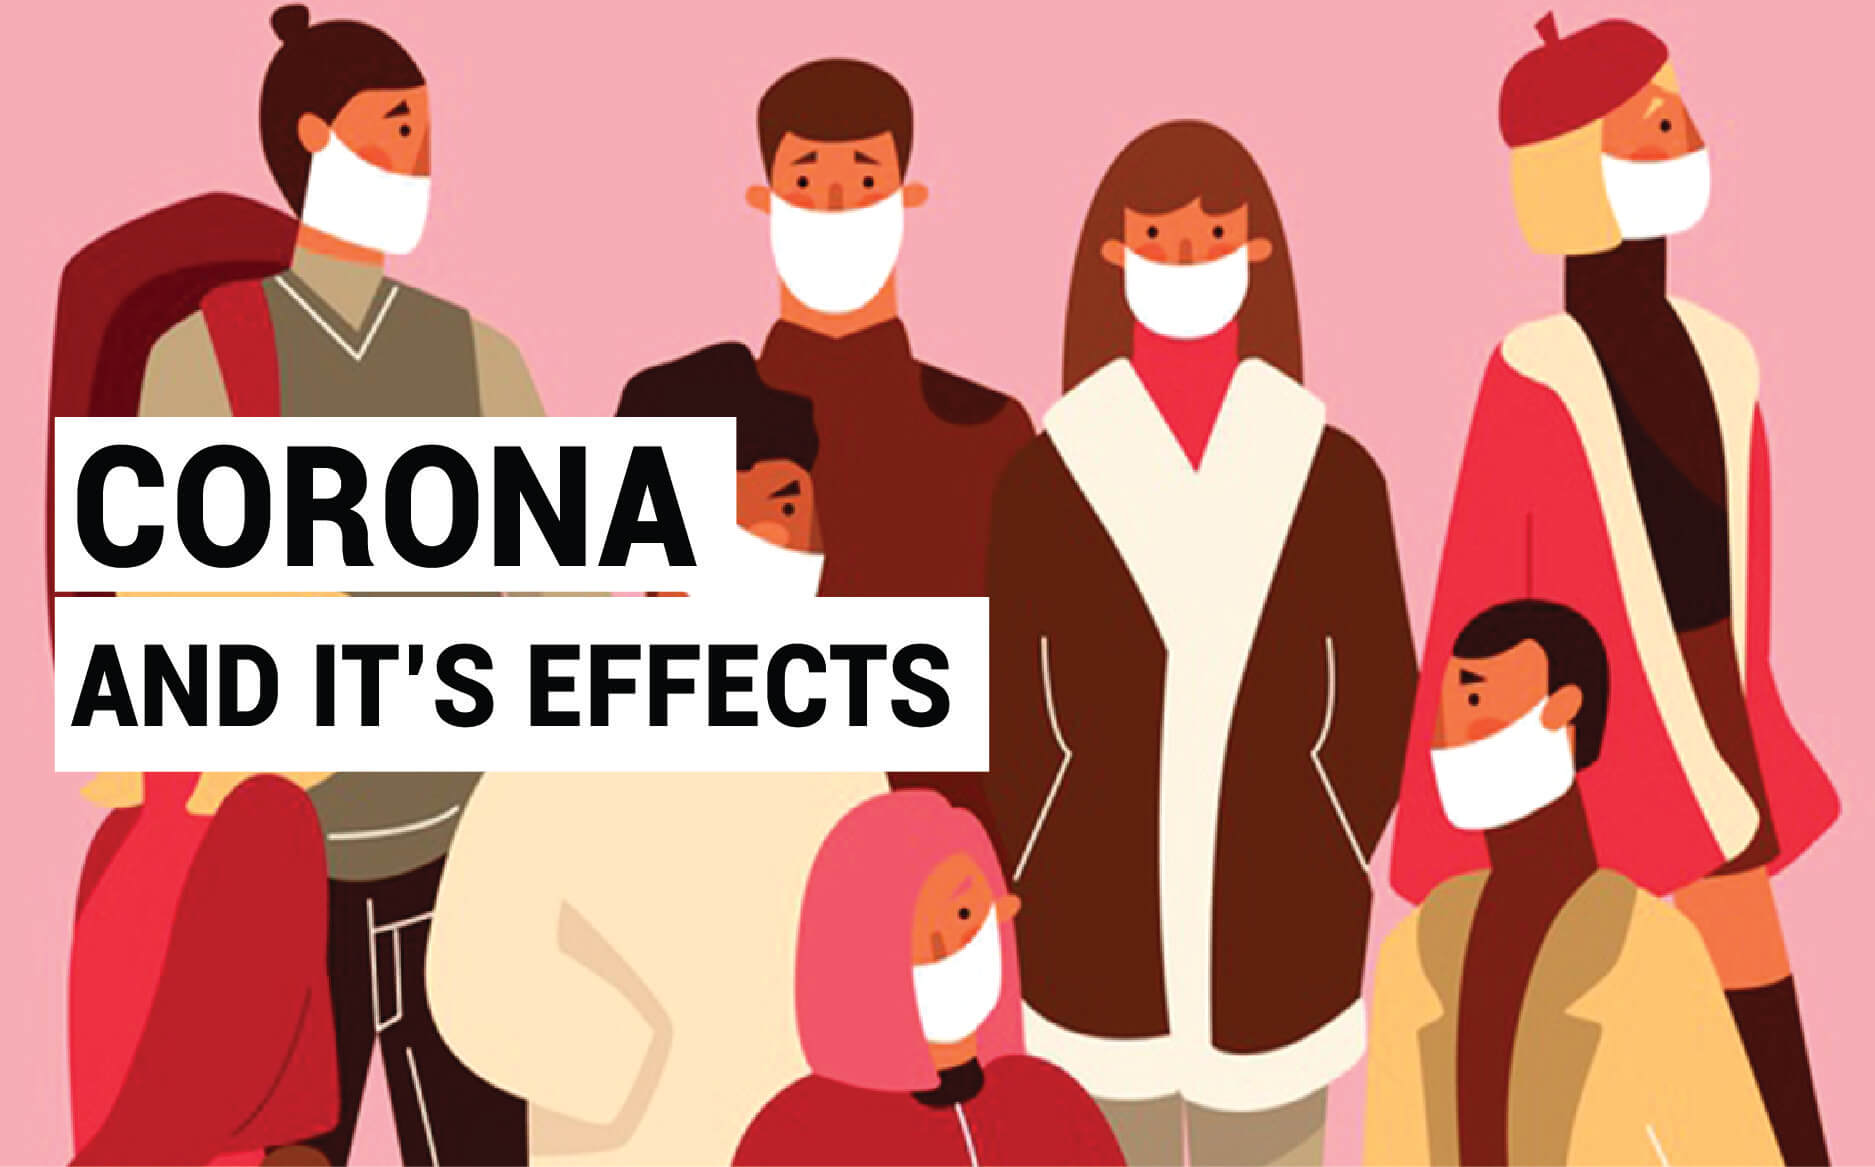 Coronavirus and effects in india | The Money Gig